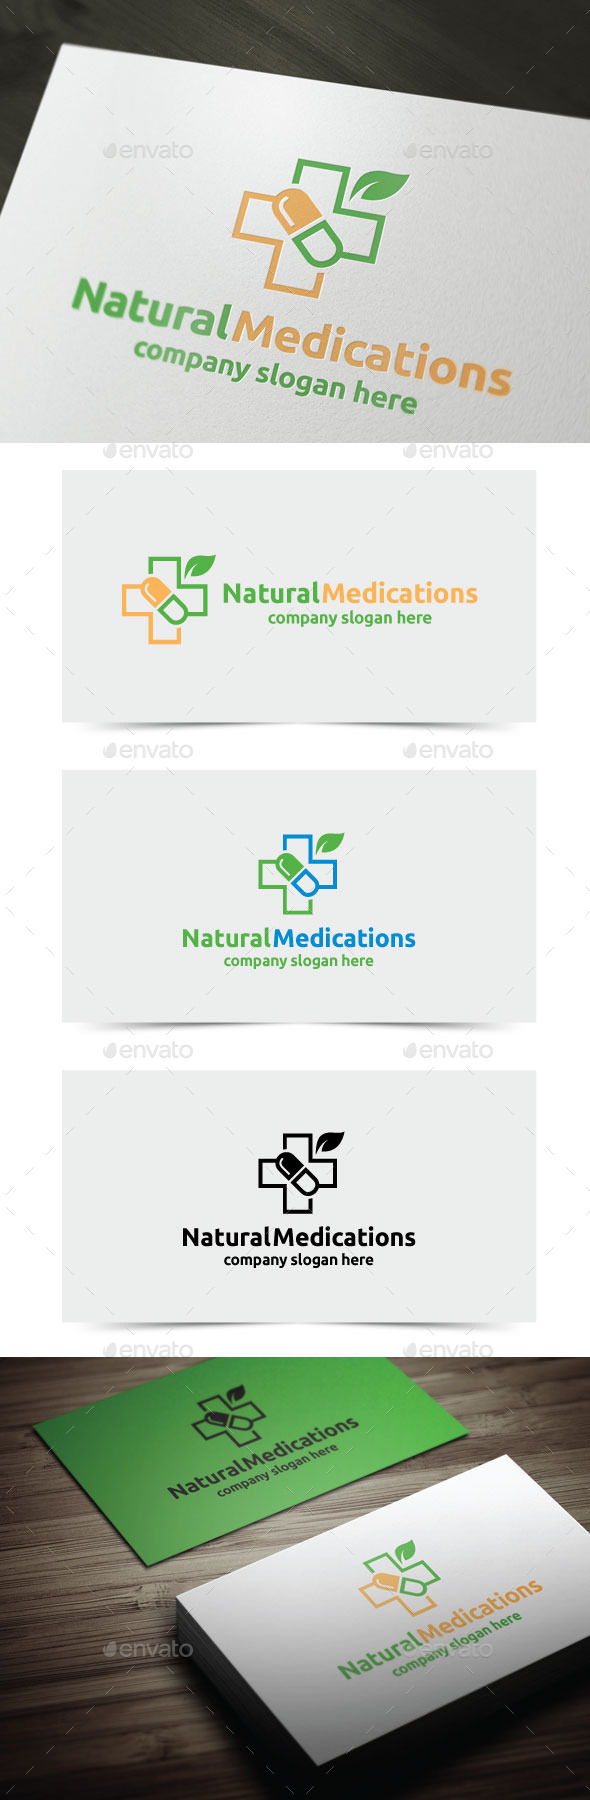 GraphicRiver Natural Medications 11170032